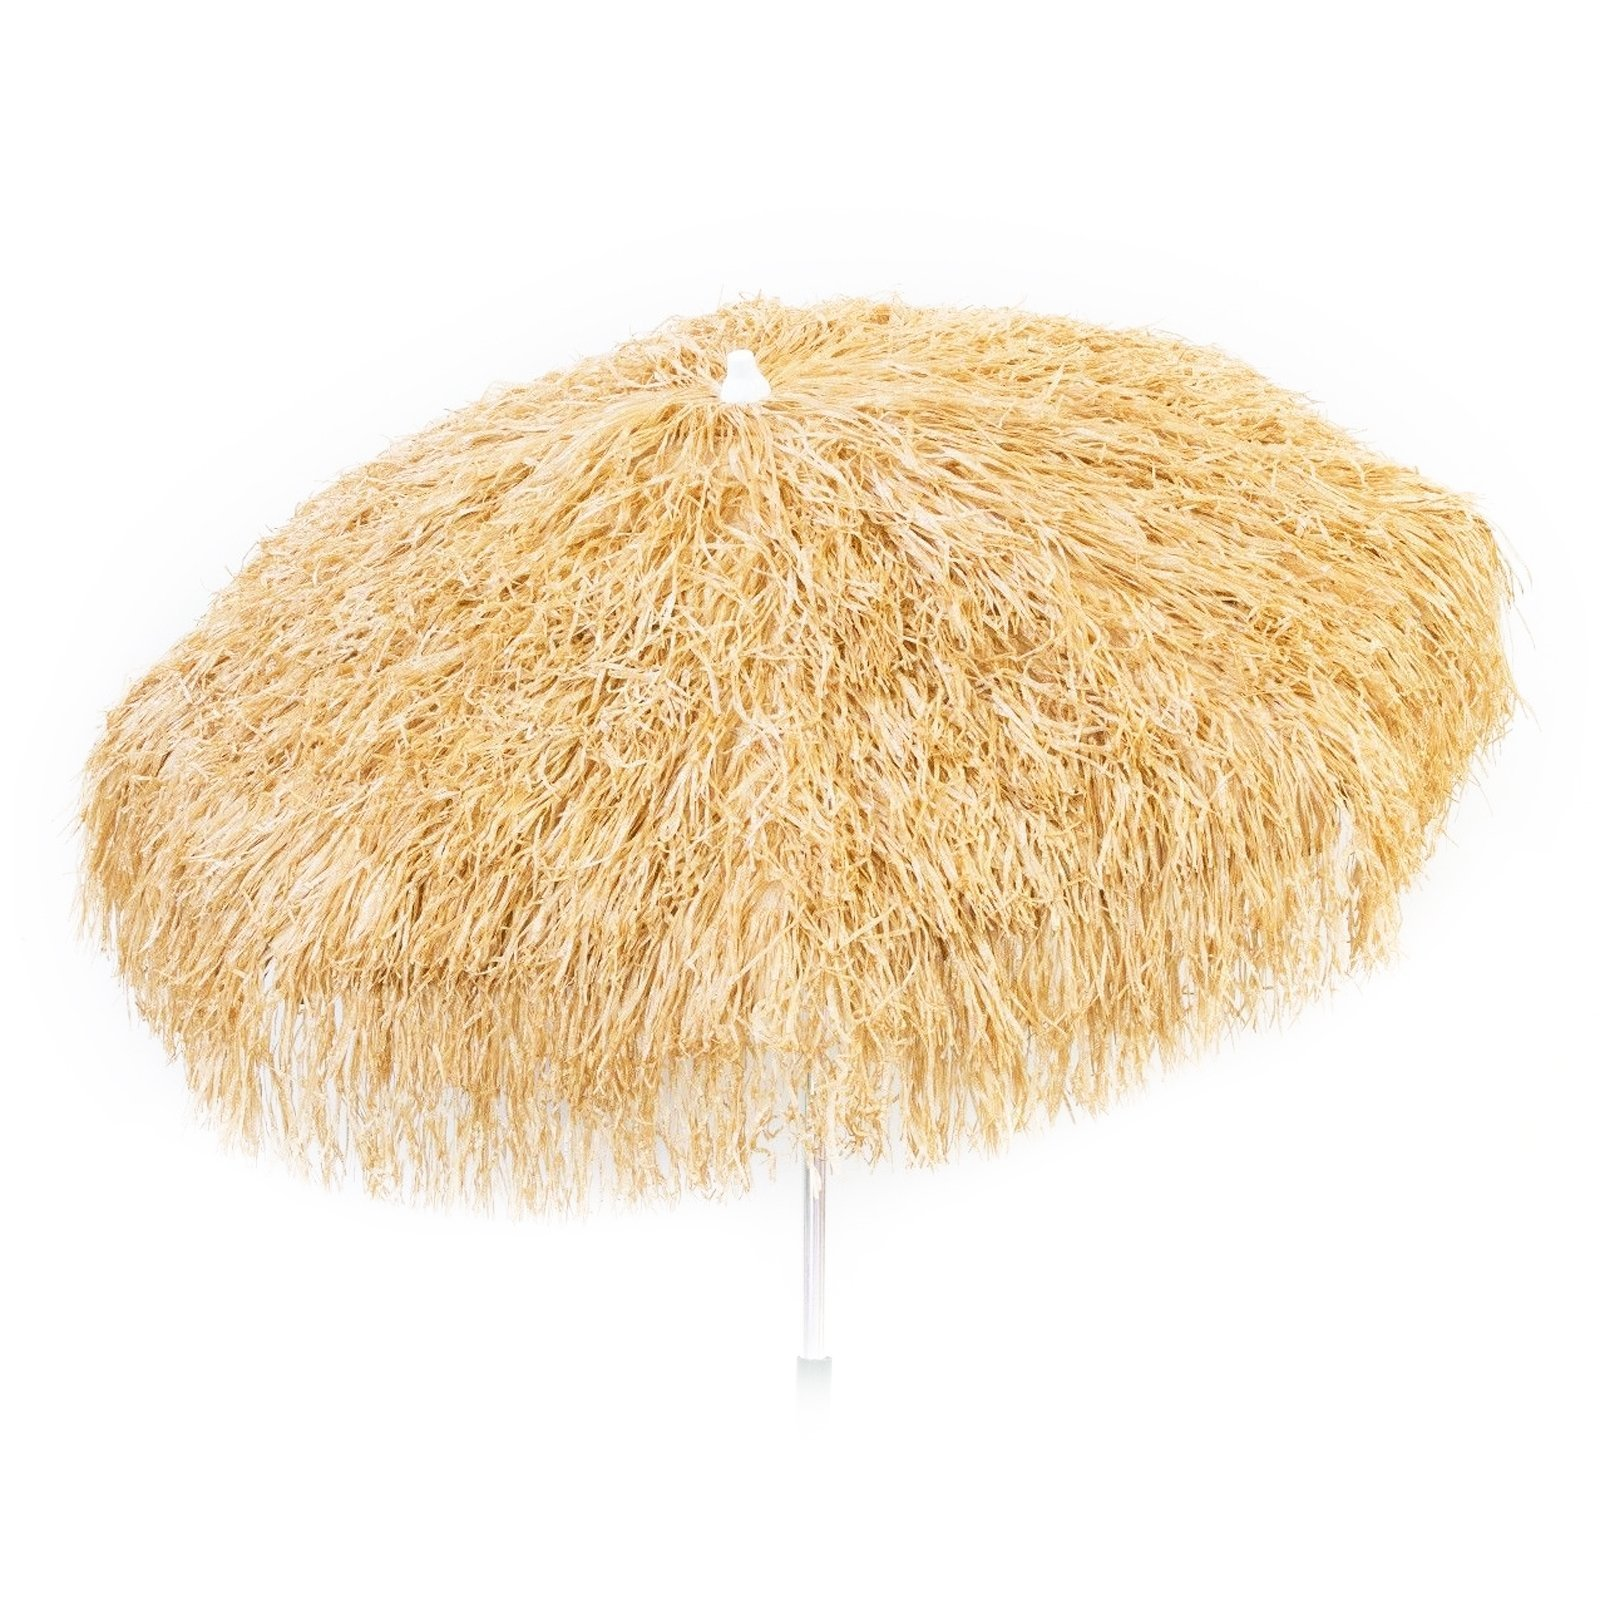 Palapa Tiki Push/Tilt Whiskey Umbrella 6 foot - Patio Pole